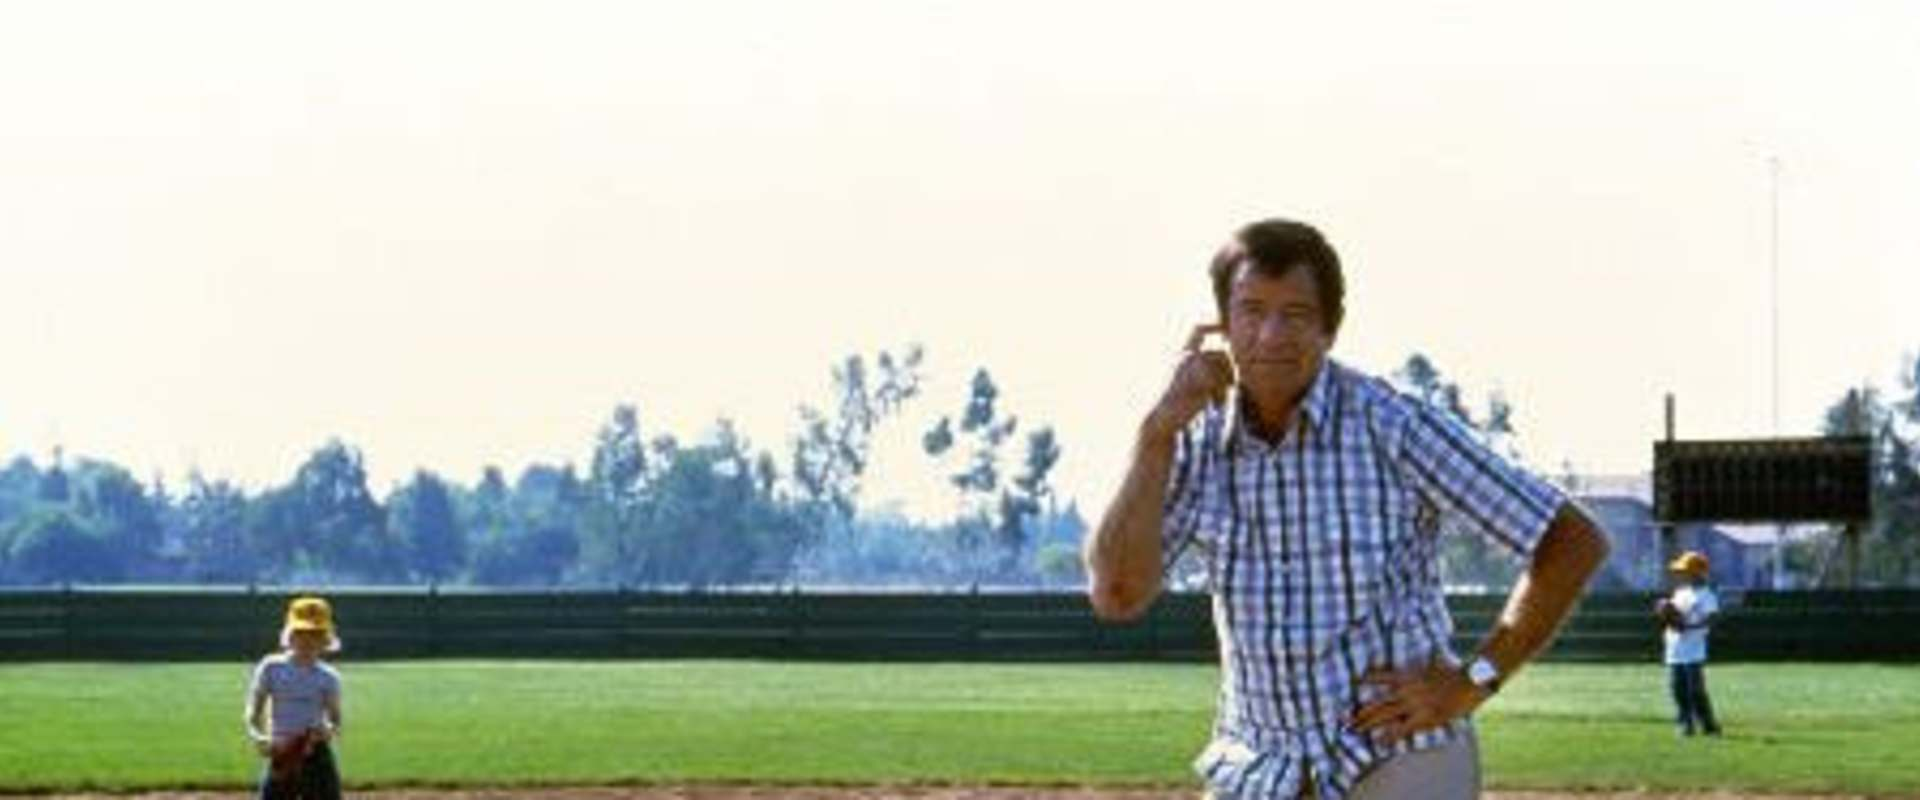 The Bad News Bears background 2